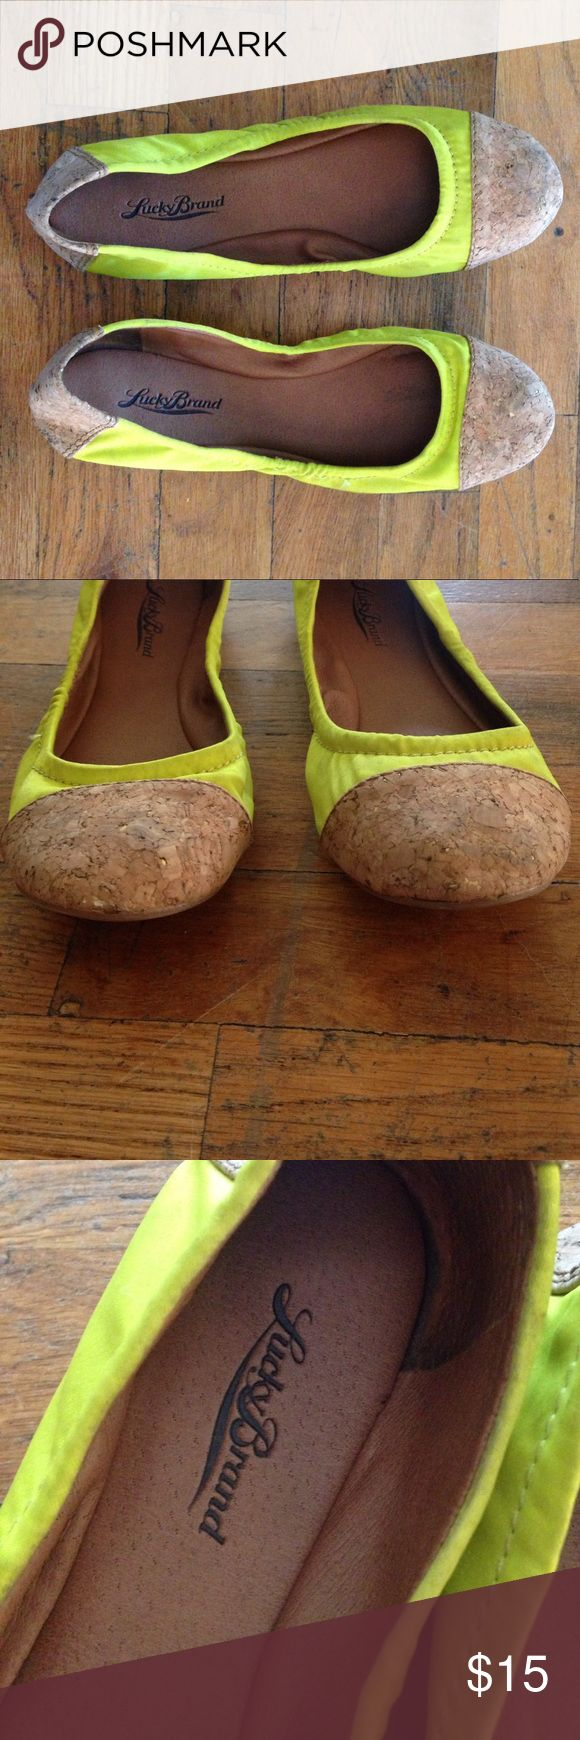 Lucky Brand Neon Yellow/Cork Flats 8.5 Some staining, but no damage, holes or major flaws. Funky and comfortable. Lucky Brand Shoes Flats & Loafers